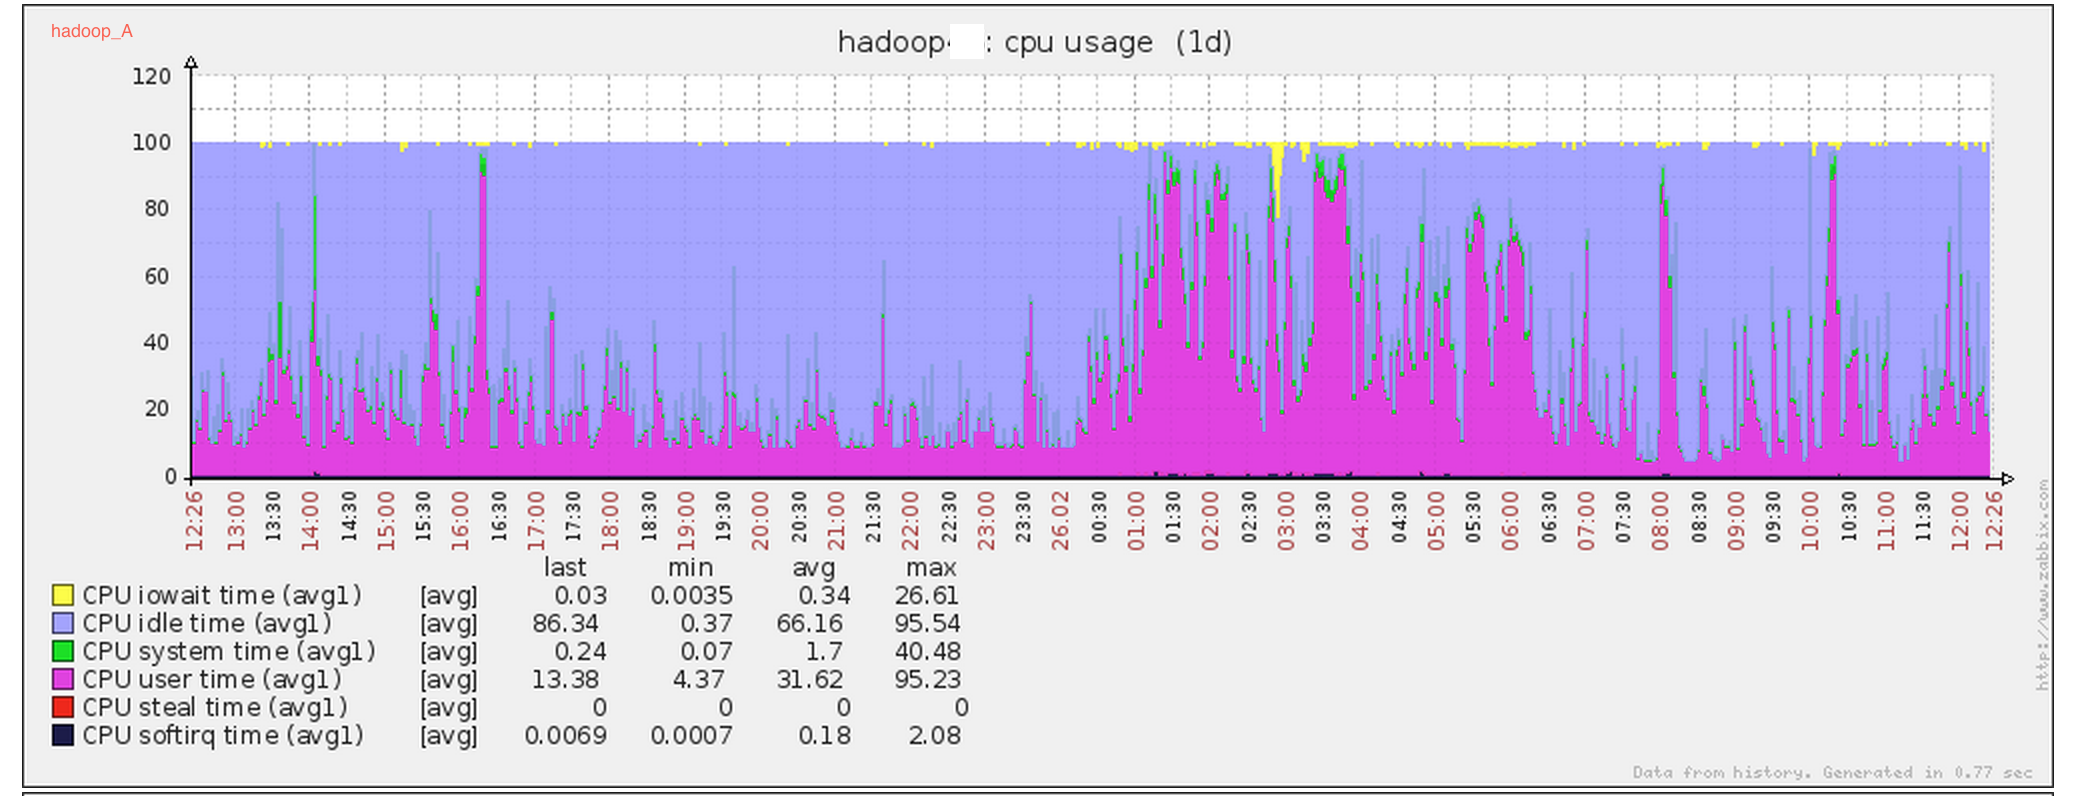 hadoop_A cpu sys态正常